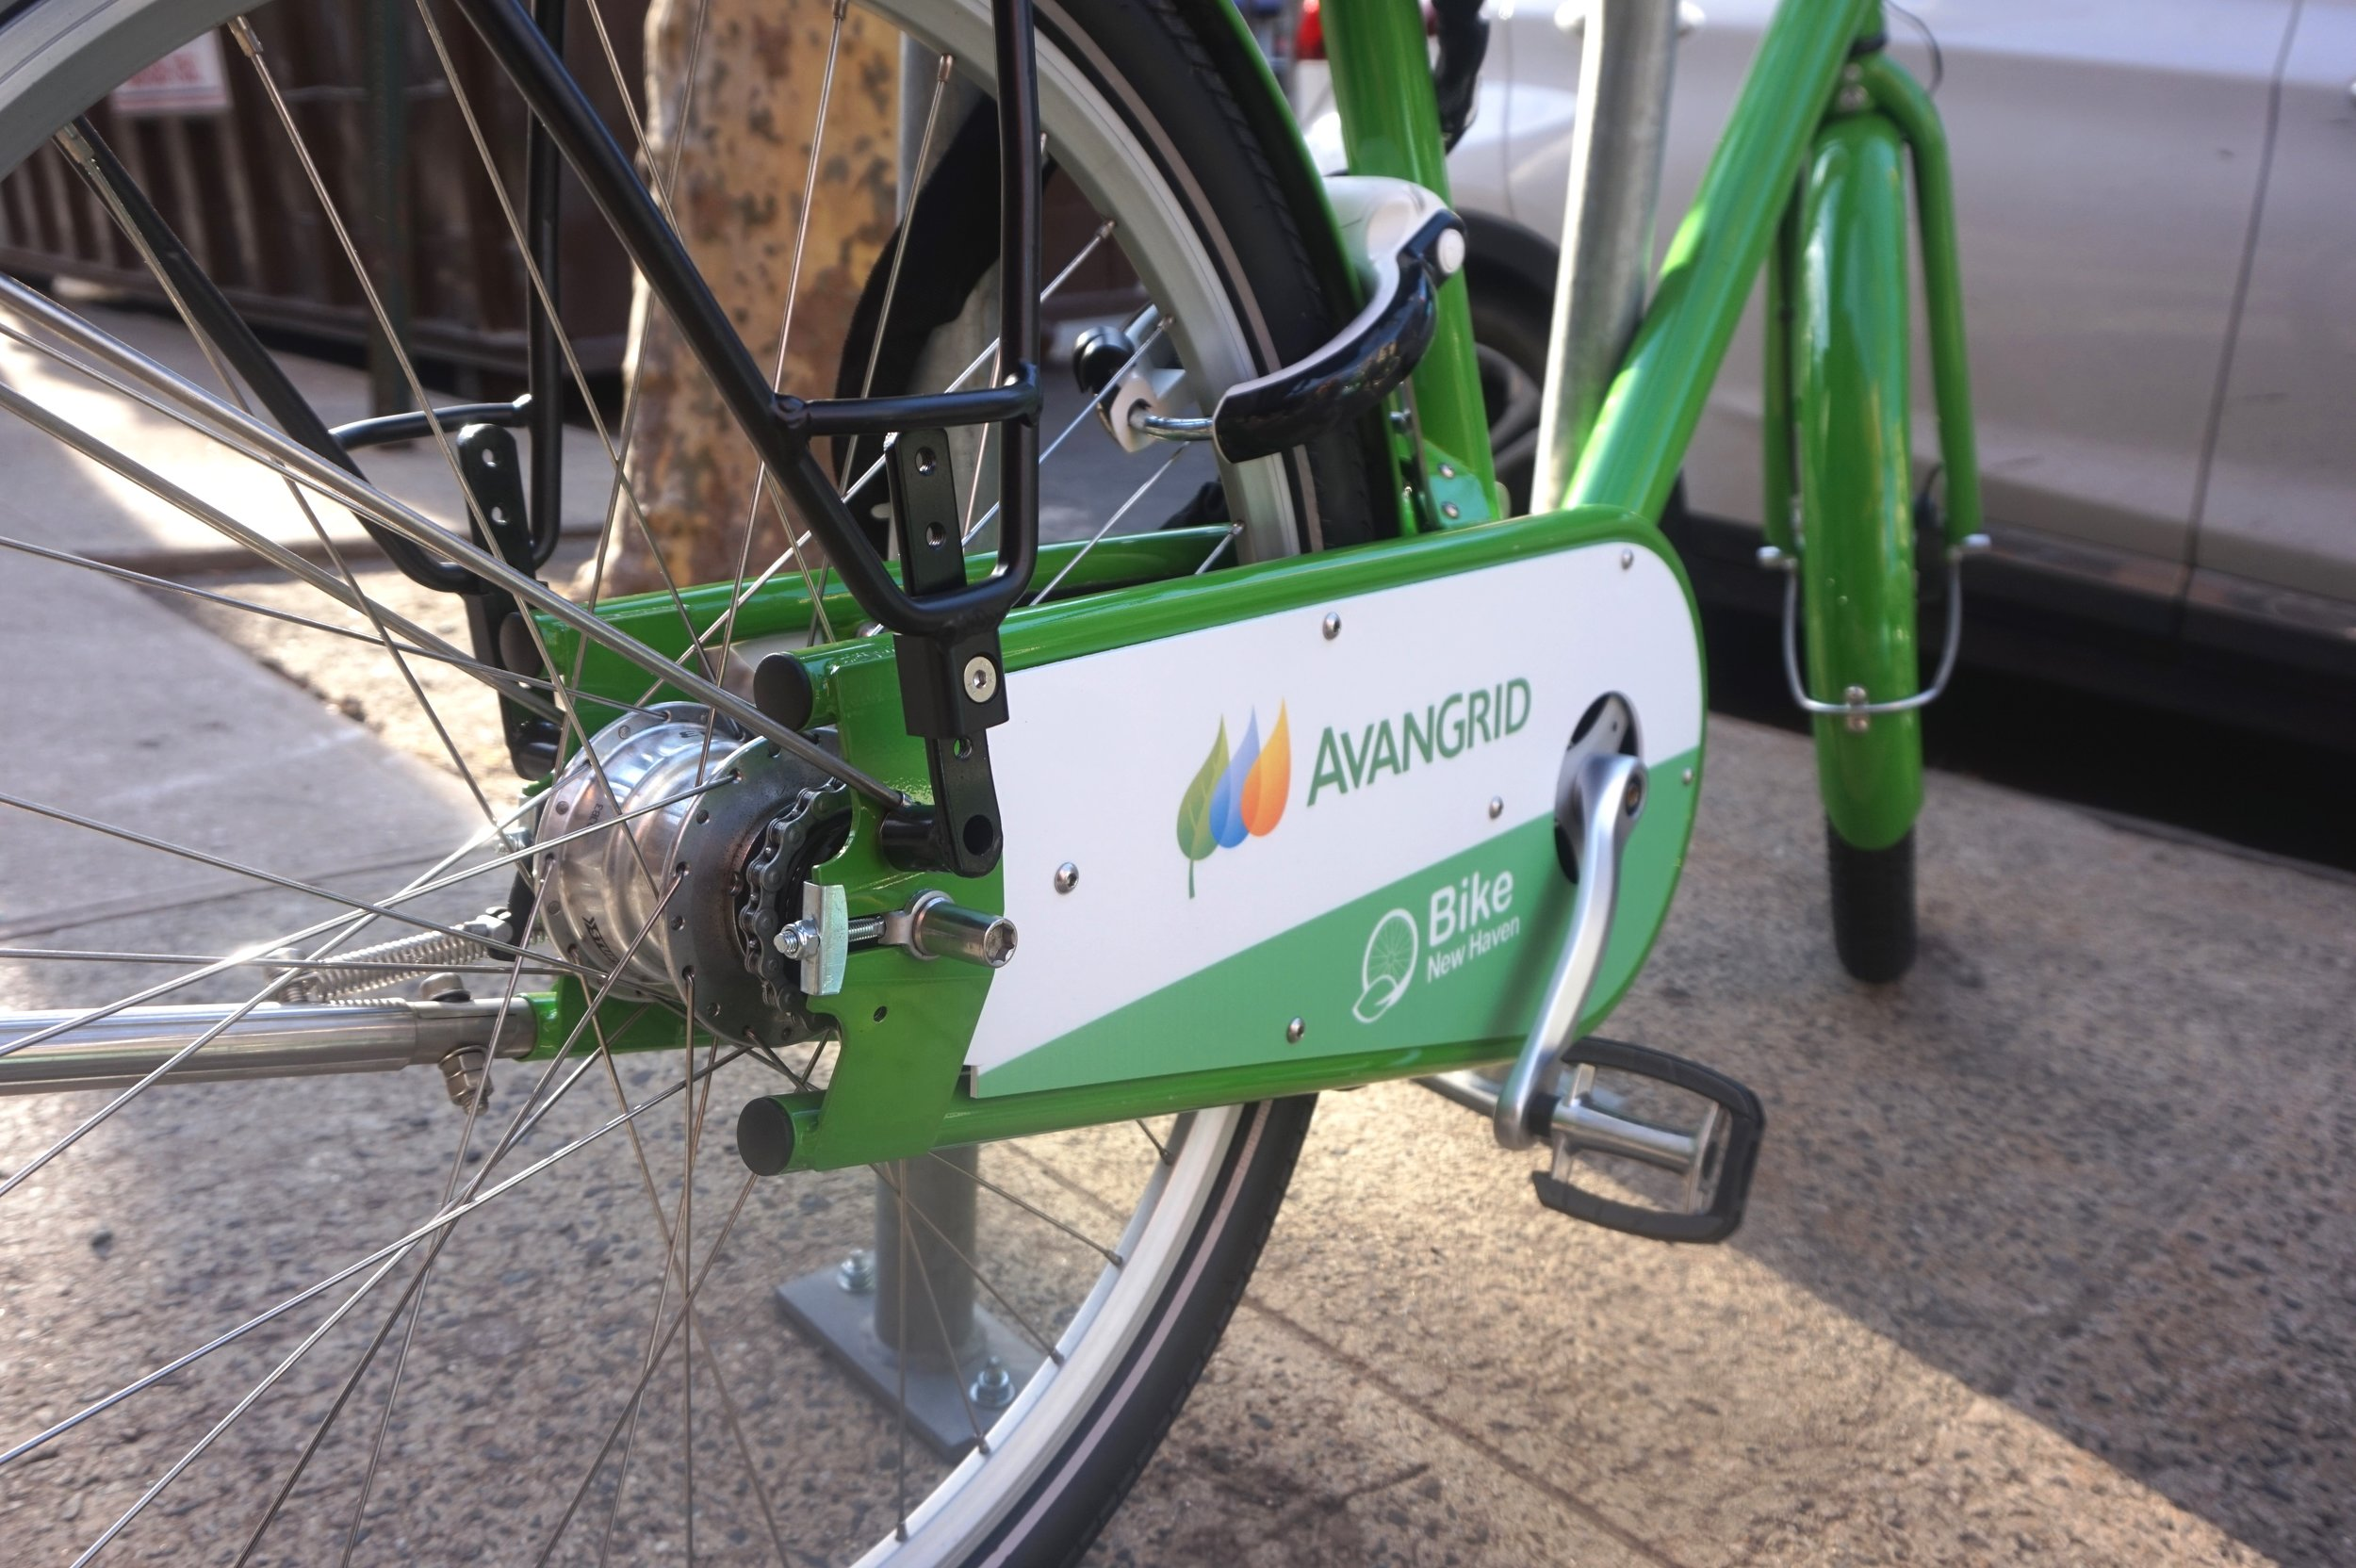 Go green! Let's pedal New Haven!